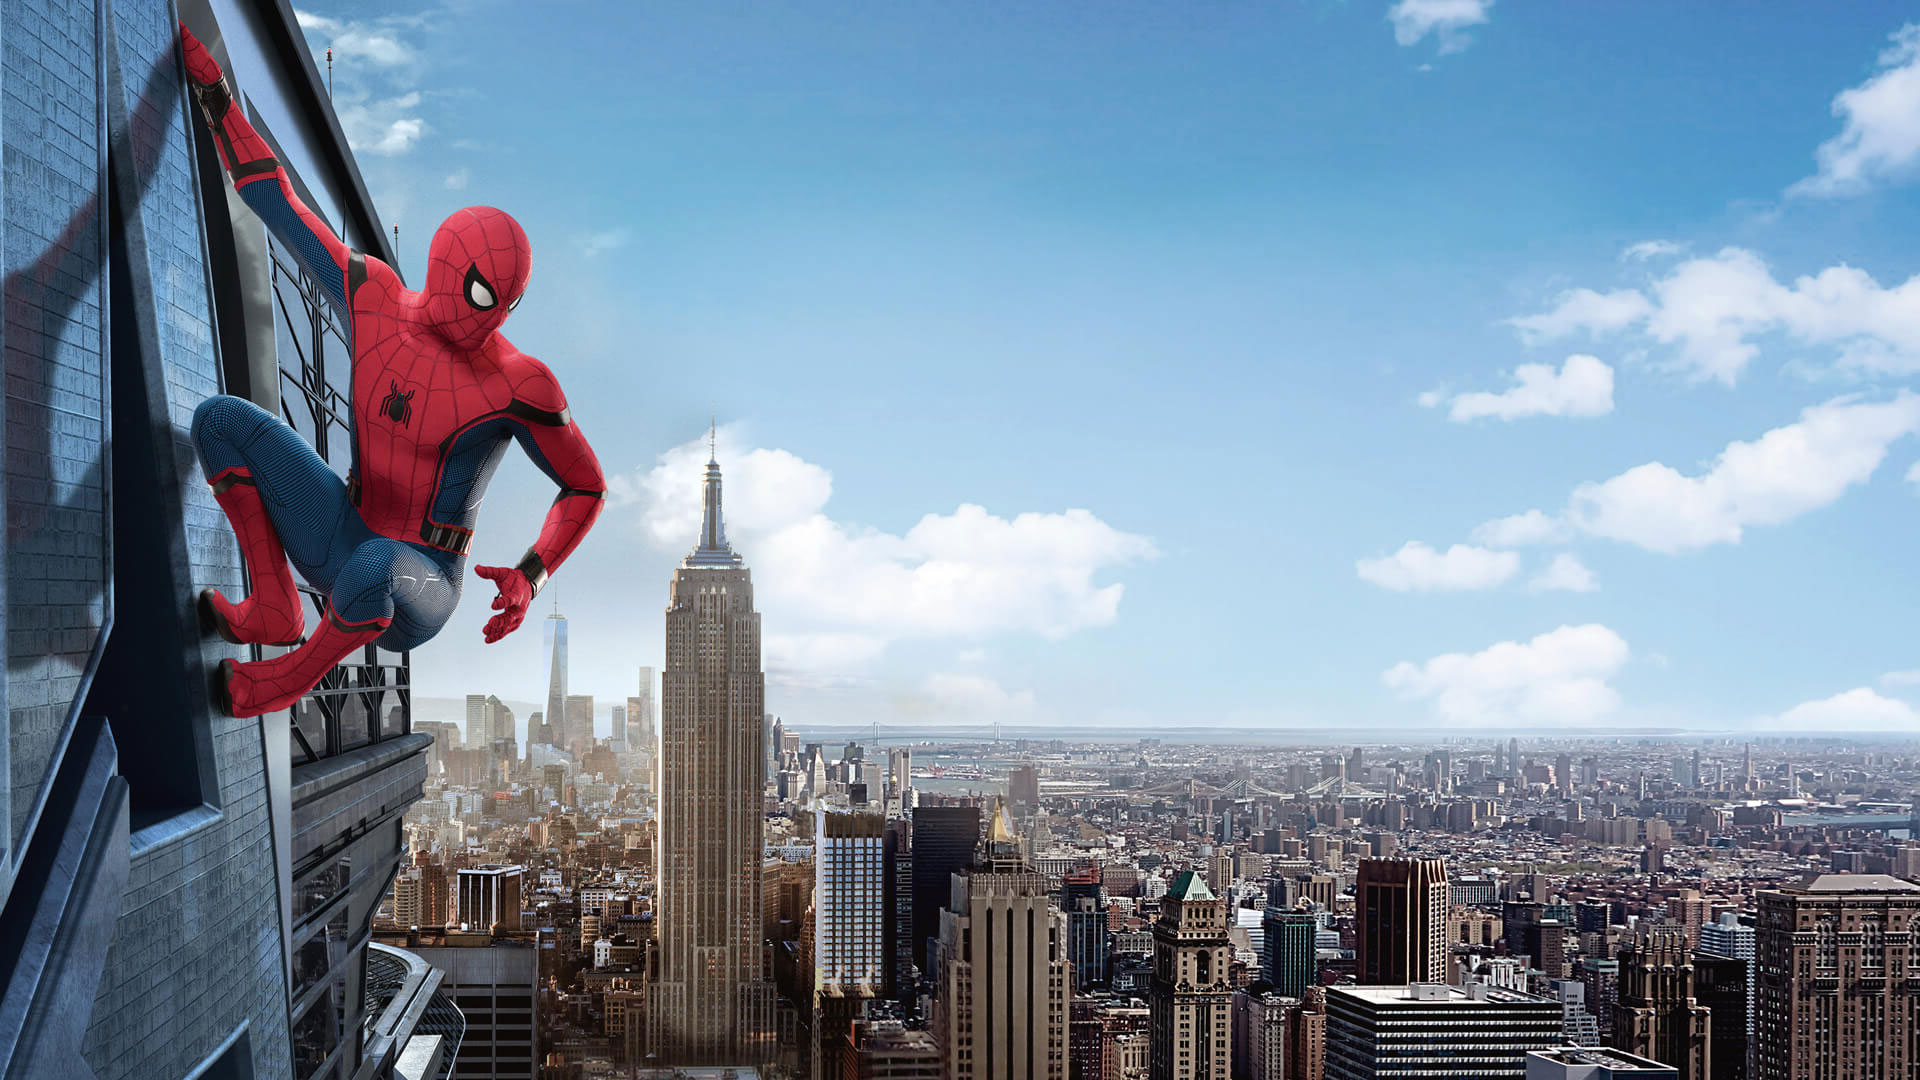 Spiderman Homecoming Movie 2017 Wallpaper Hd